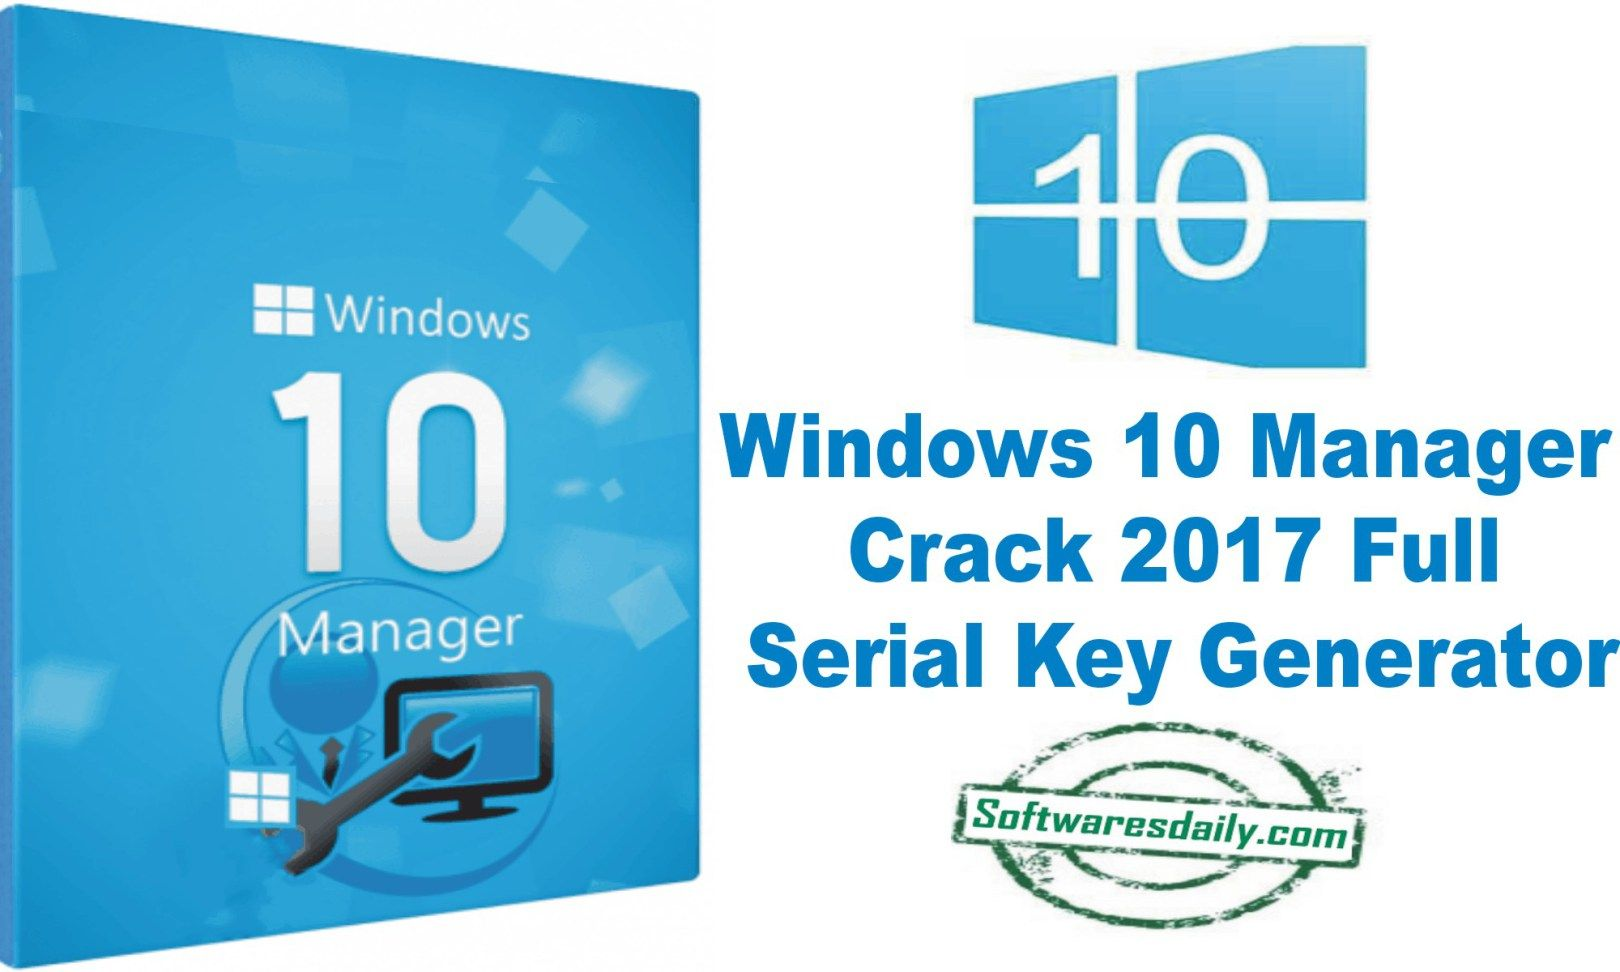 Windows 10 Manager Crack 2017 Full Serial Key Generator | Crack in